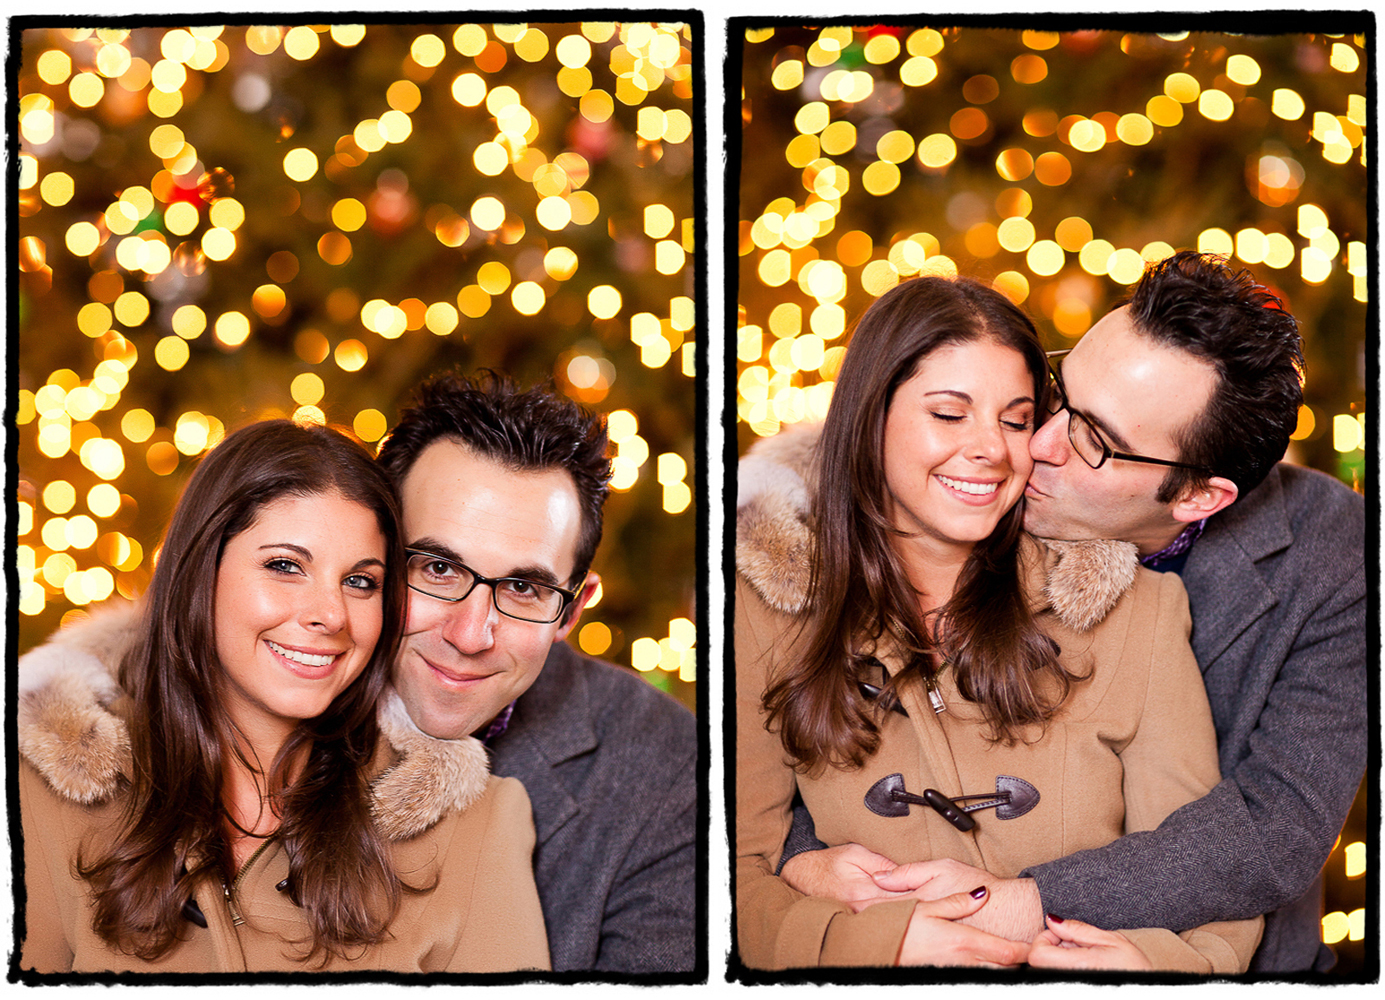 Engagement Portrait: Jessica & Ross in front of some twinkly lights in DUMBO during a wintry shoot.